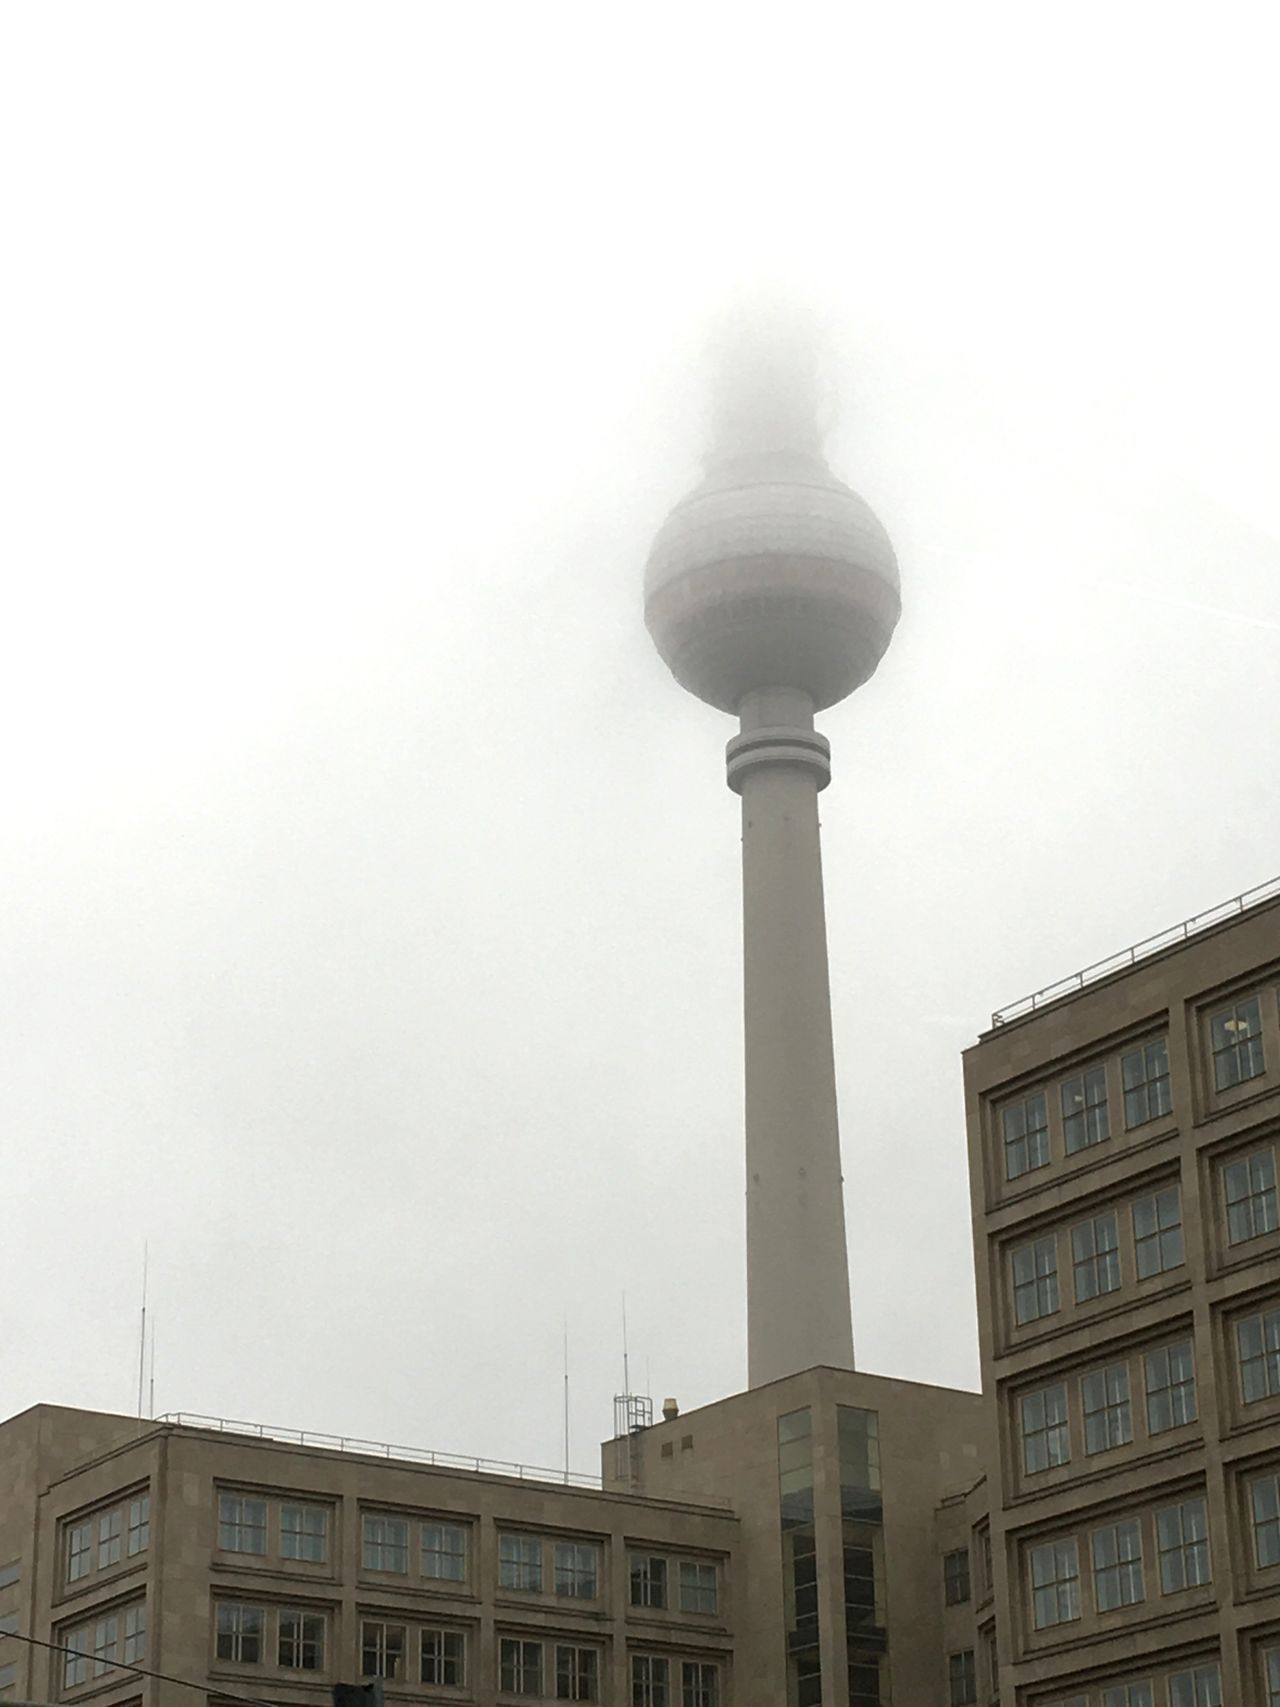 Architecture Built Structure Tower Building Exterior City Low Angle View Outdoors Day Travel Destinations No People Neighborhood Sky tower Alexanderplatz berlin Alex In Fog